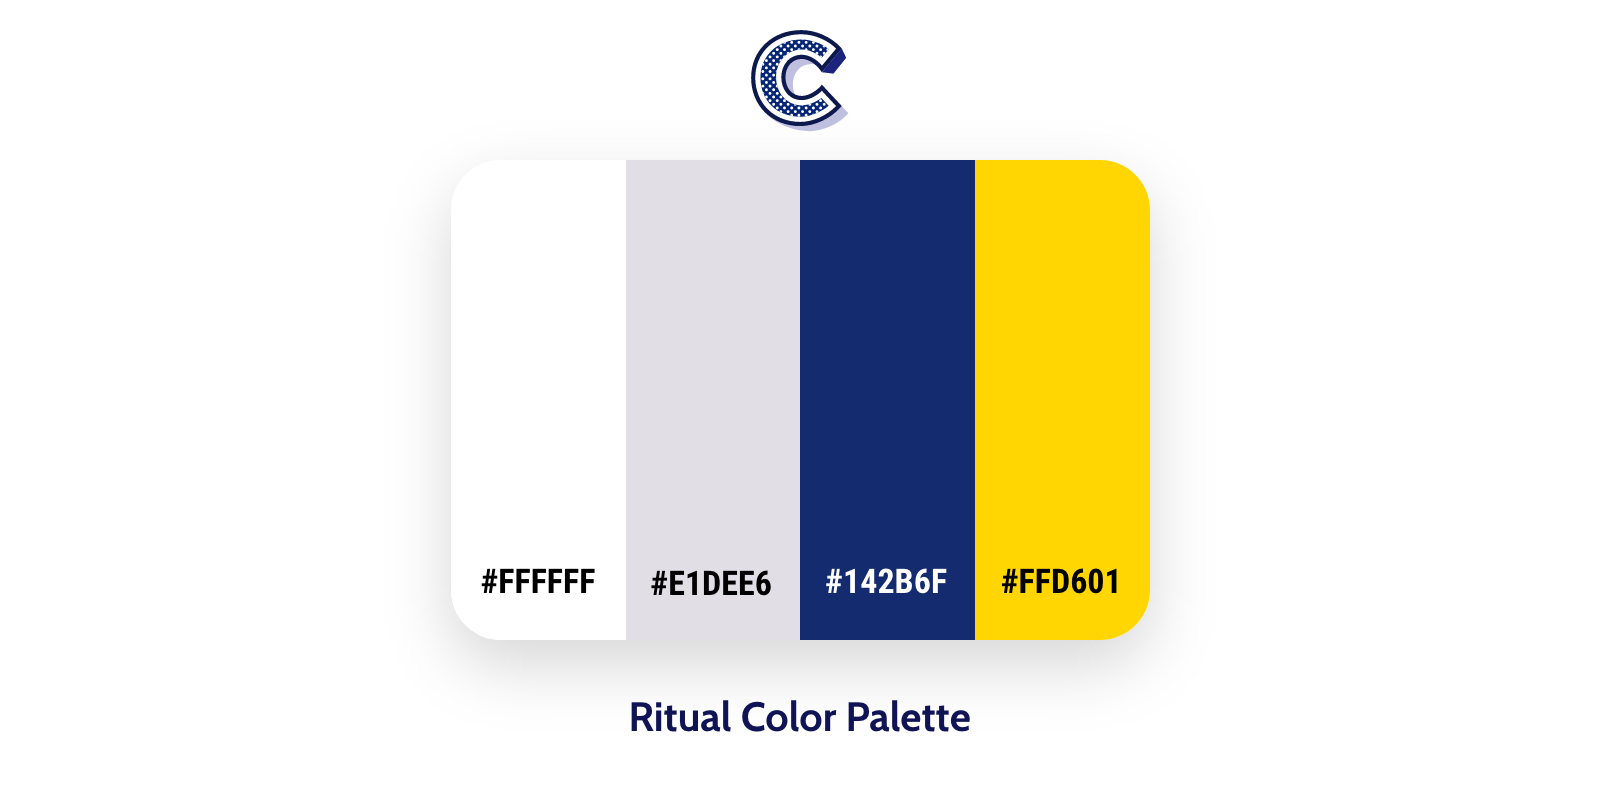 the featured image of ritual color palette